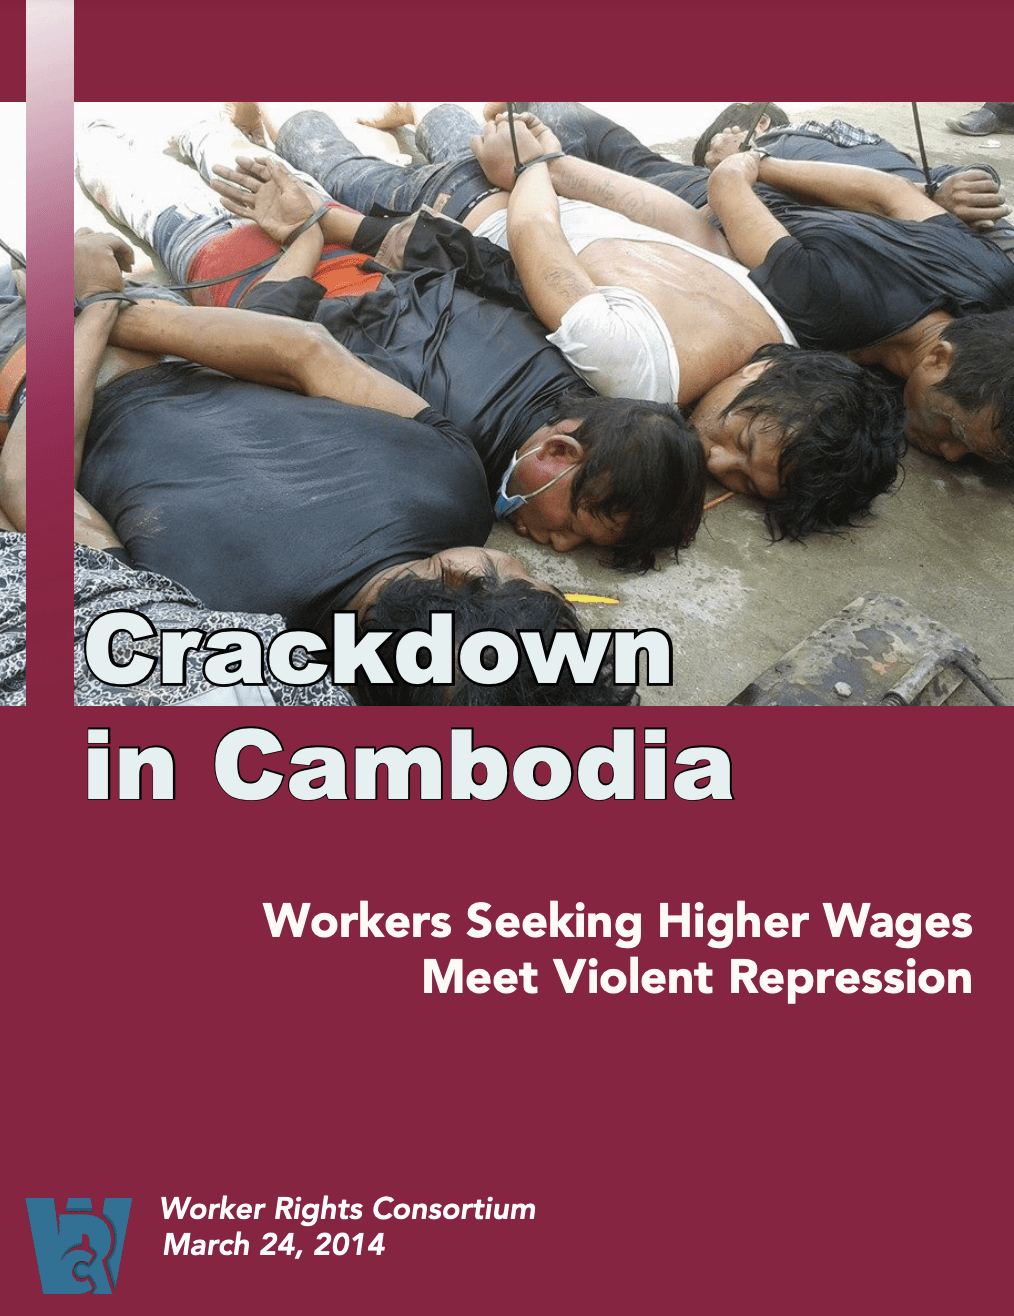 Crackdown in Cambodia: Workers Seeking Higher Wages Meet Violent Repression